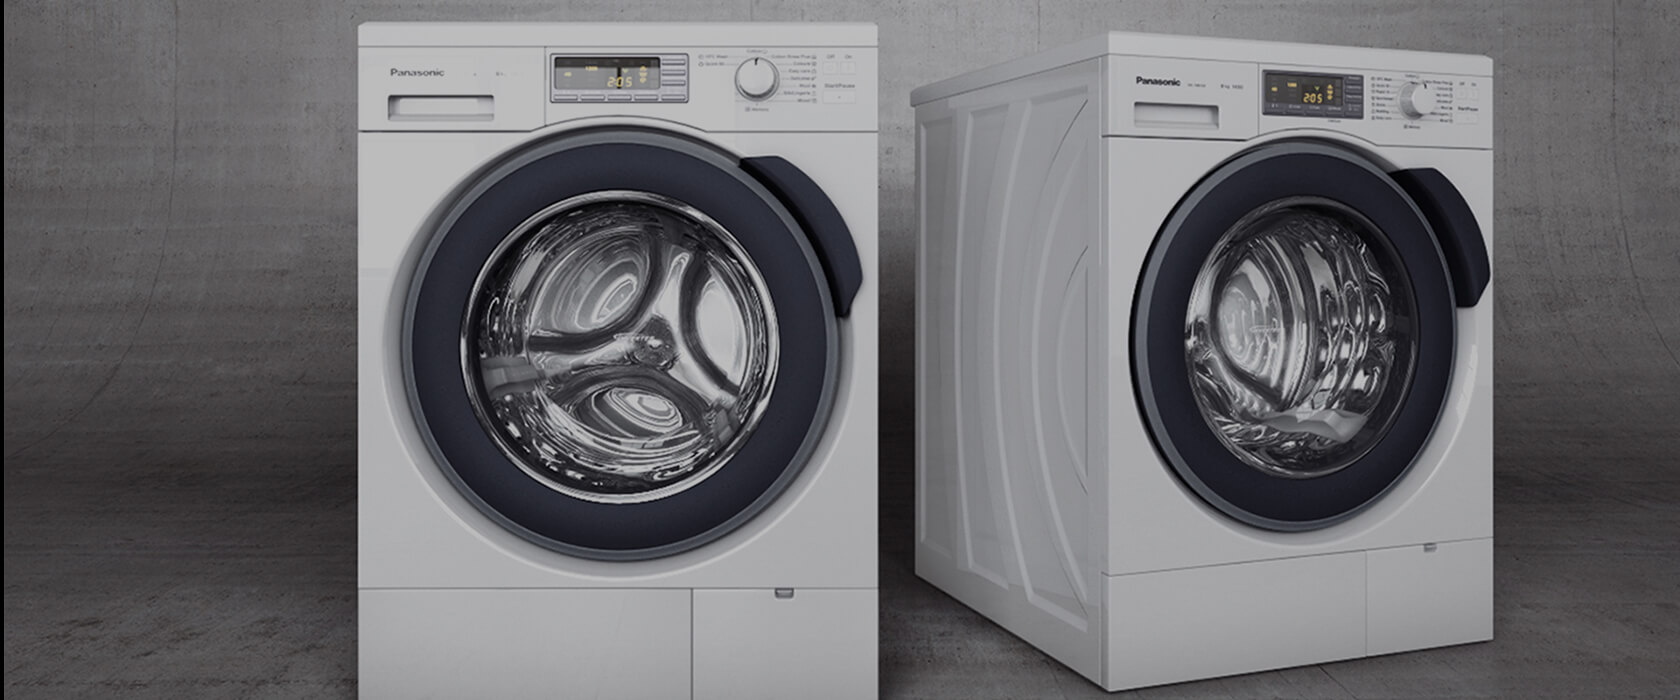 lg washing machine service center